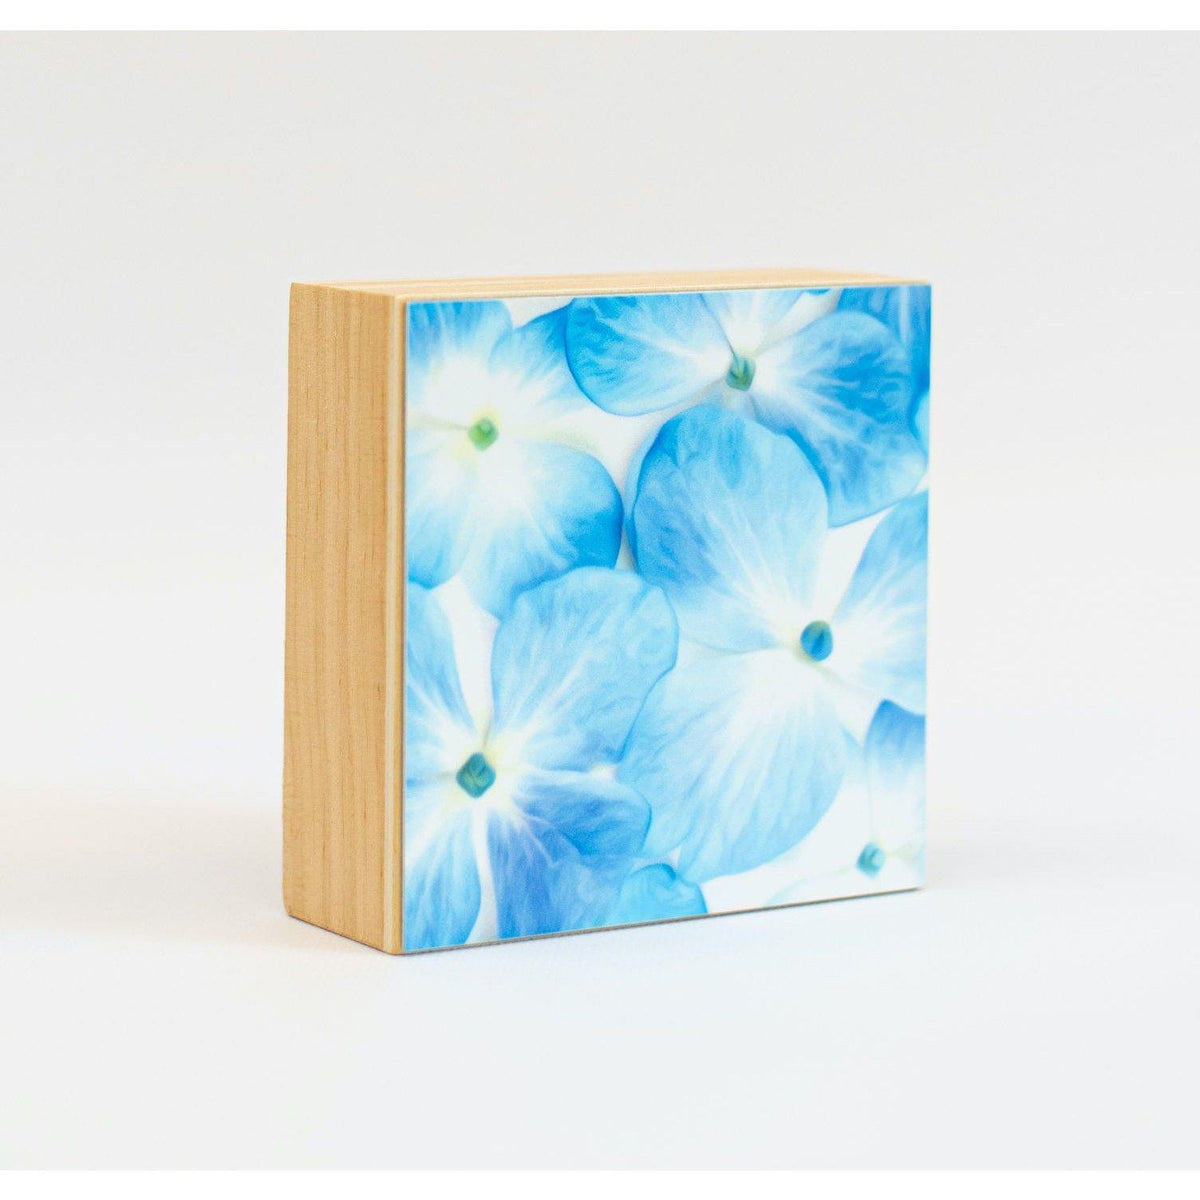 Hydrangea Aluminum Photo on Wood Block art print ANVIL metals studio